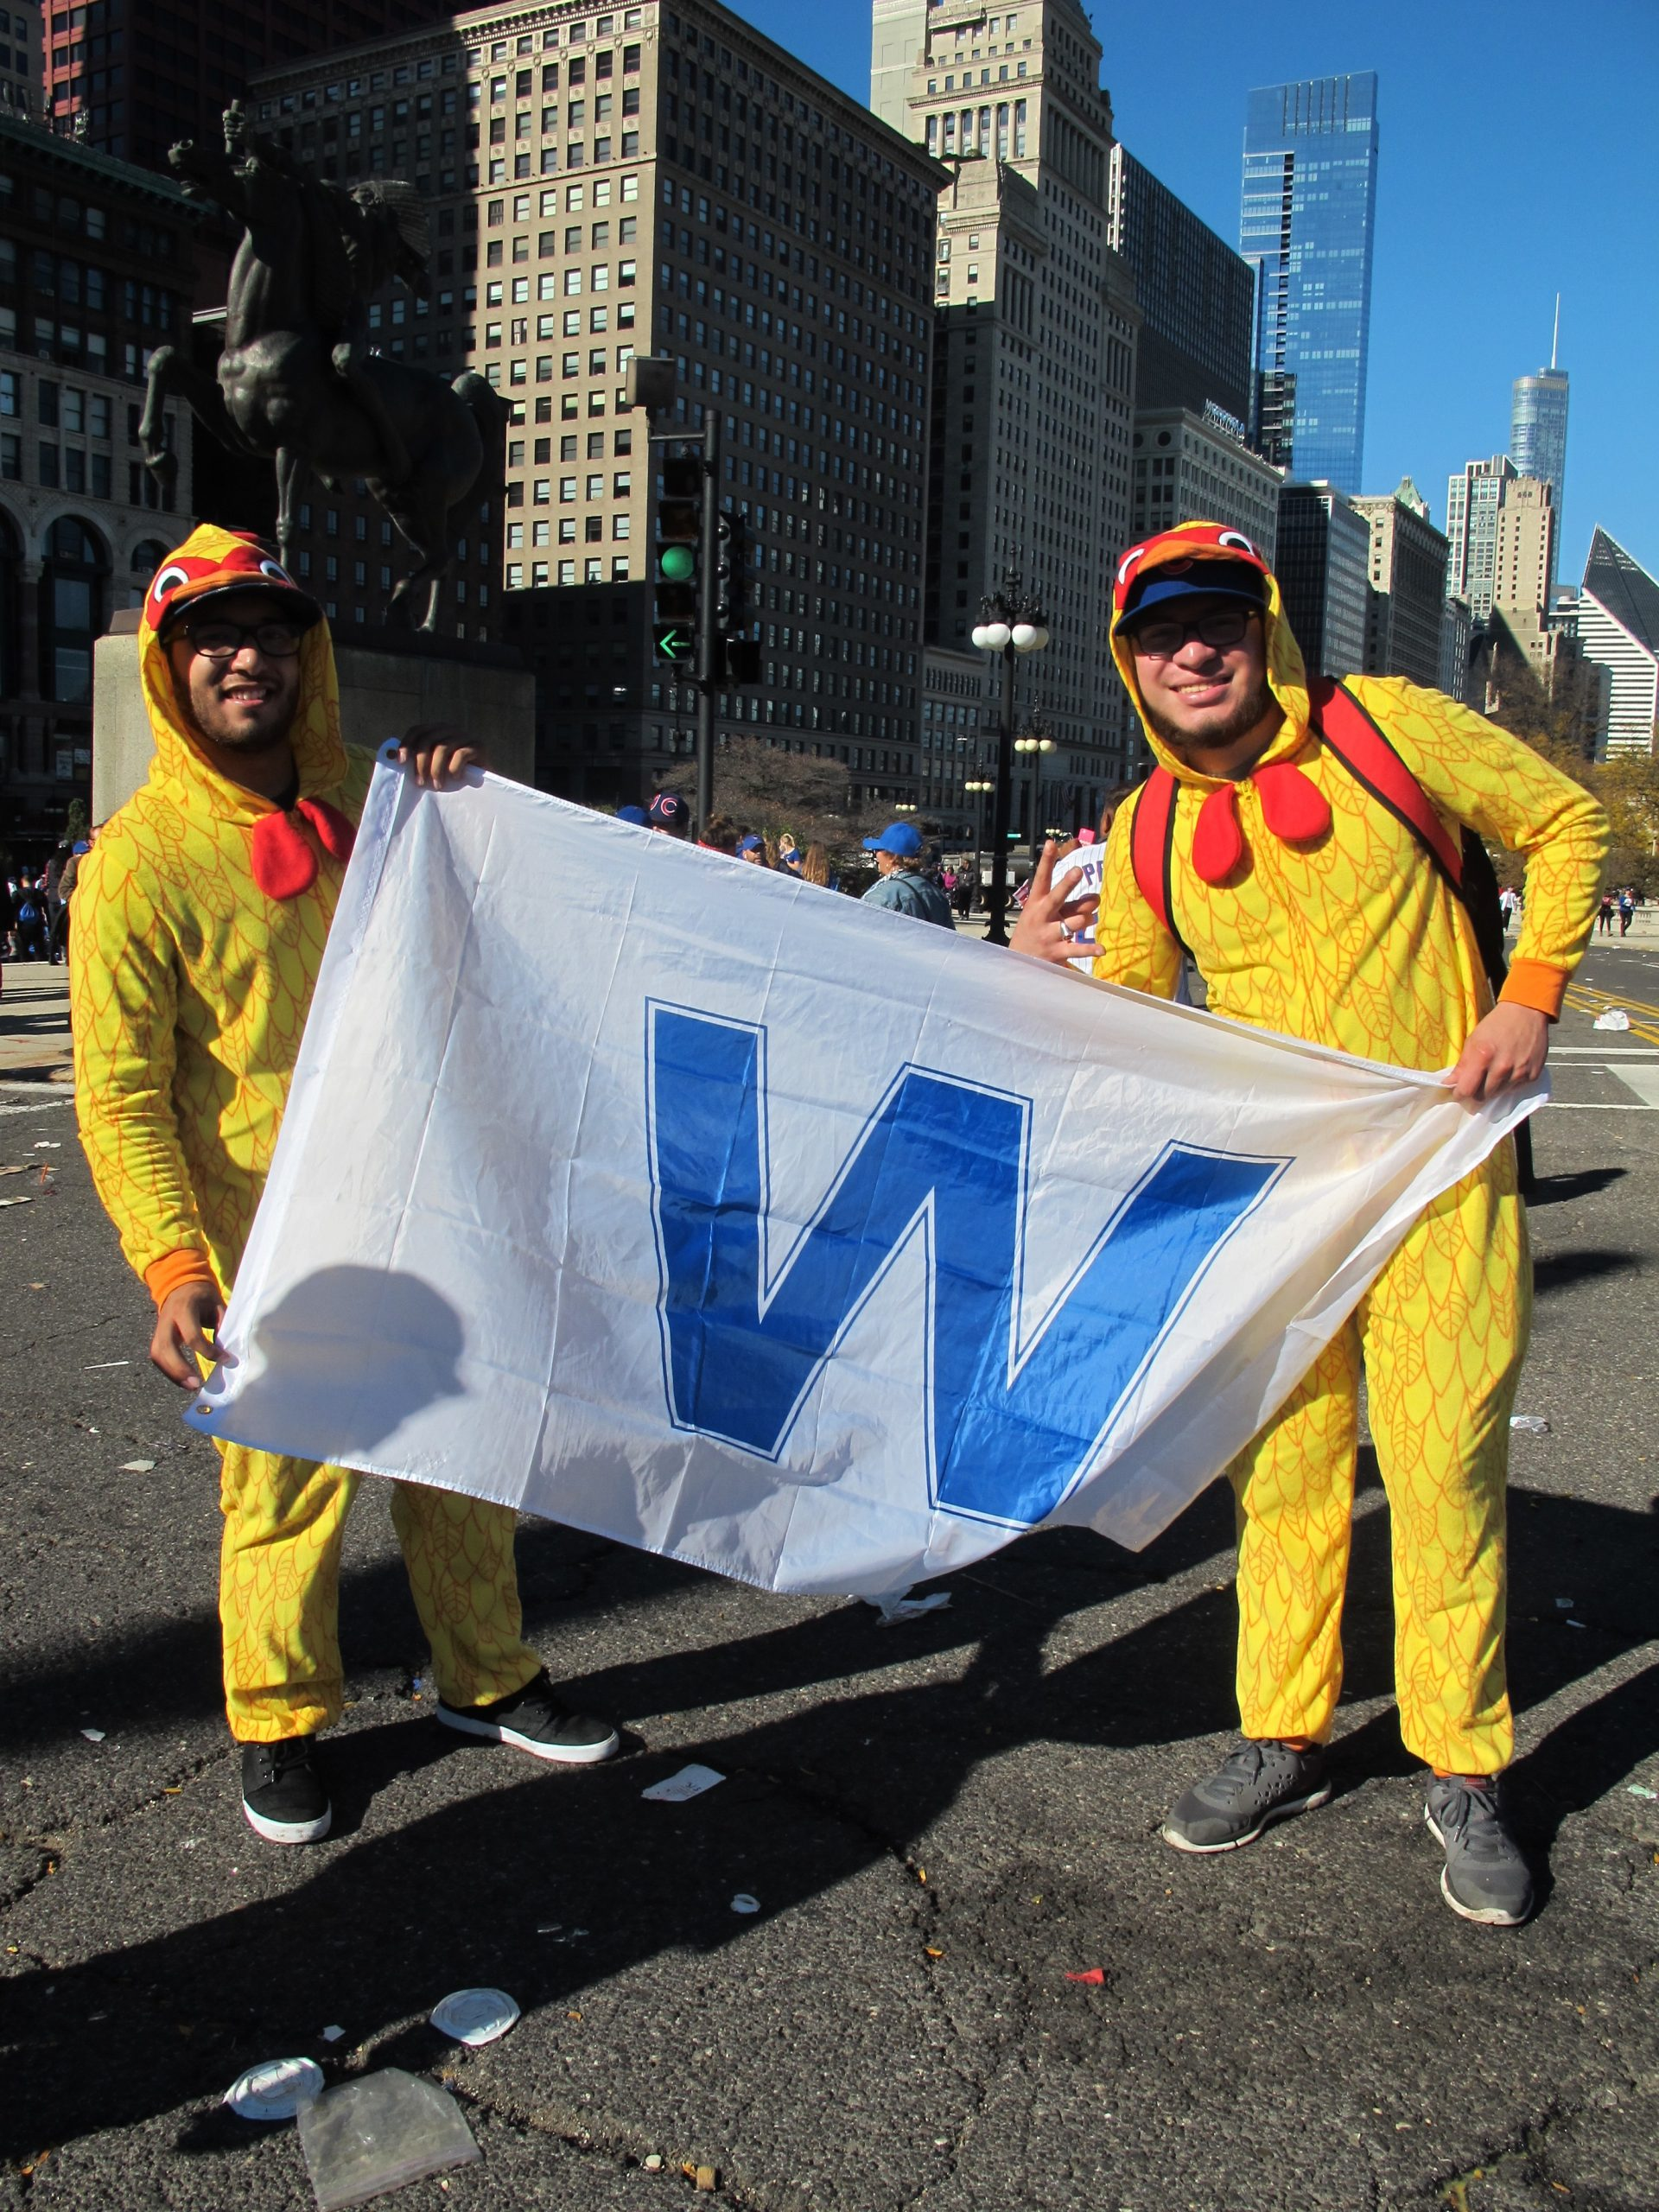 Now that the Cubs have won, Arthur Sandoval and Aaron Bueno believe that chickens will fly.